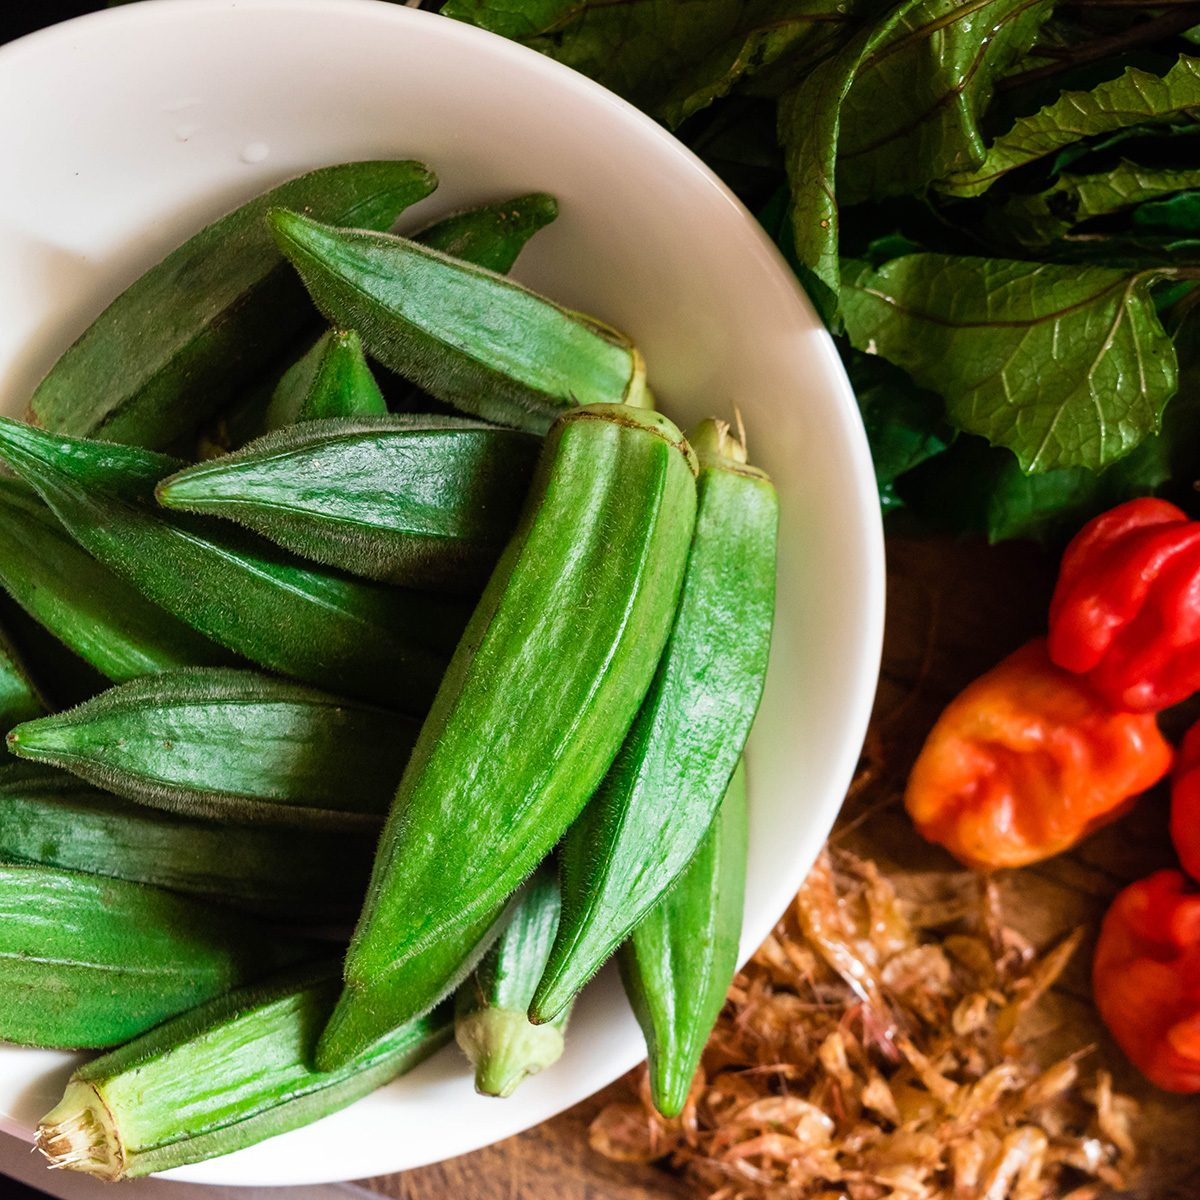 Top view of Farm fresh Raw Green Organic Okra or Lady Fingers in white bowl with red peppers, crayfish and pumpkin leaves or Nigerian ugwu leaves